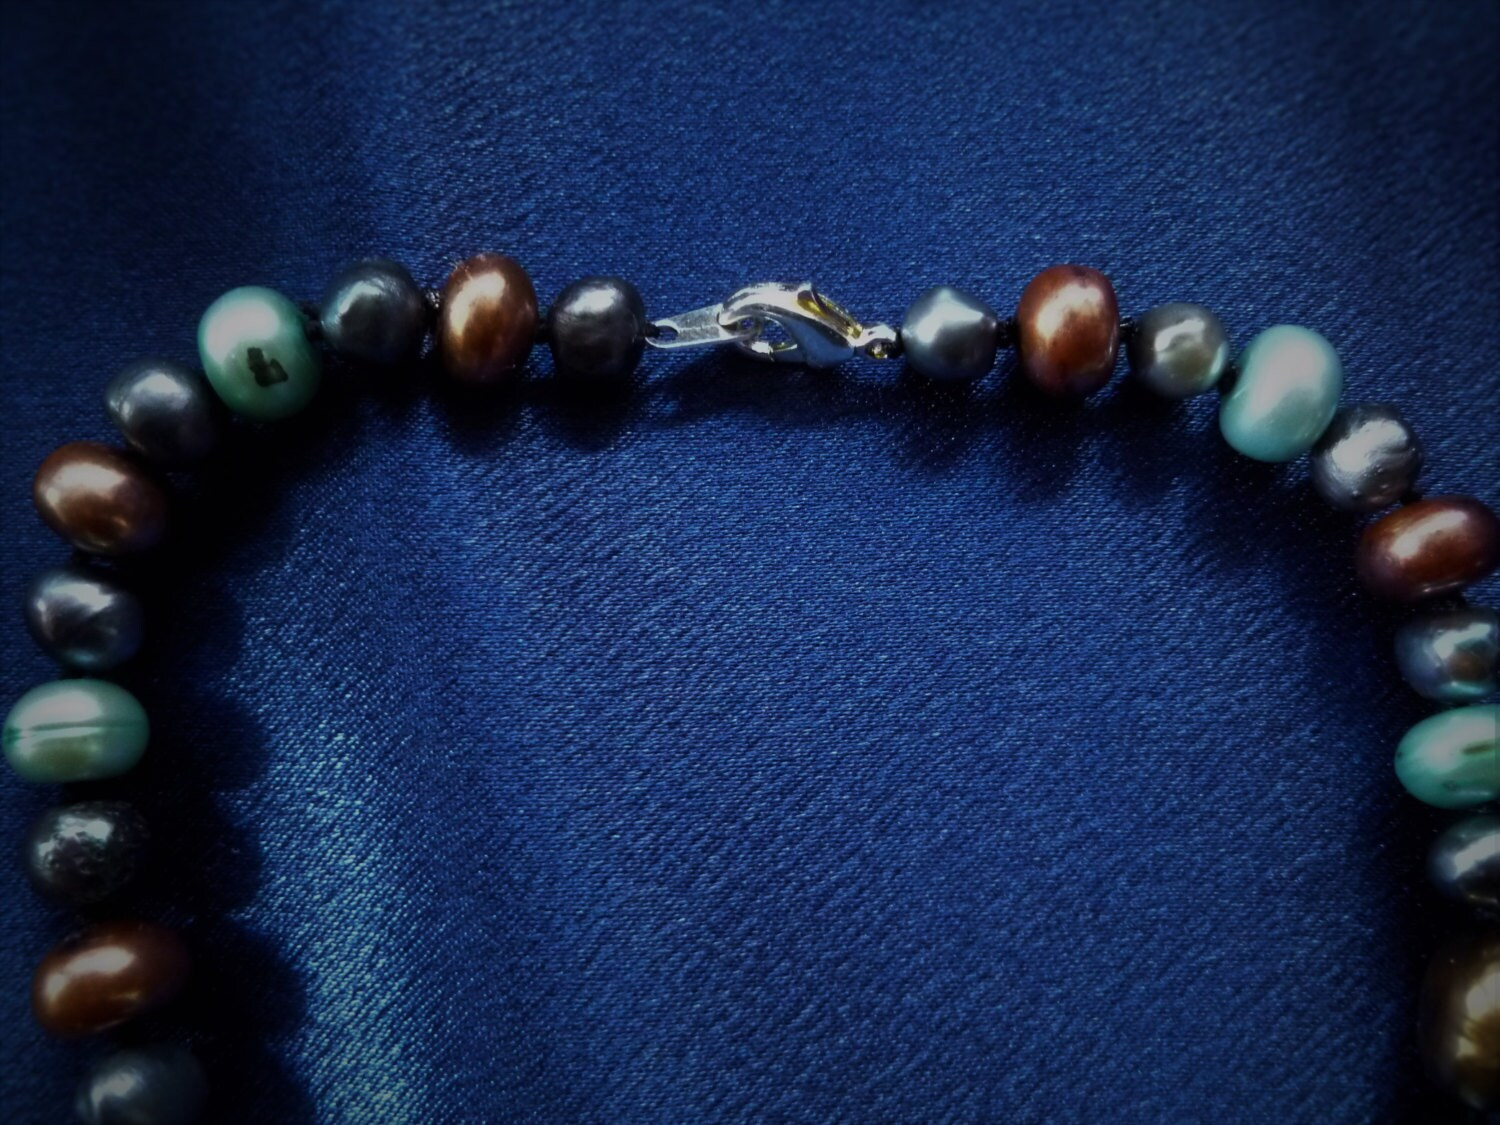 Fresh Water Pearl Necklace Dyed Pearls on Black Silk Cord Nickle Free Clasp 18 Inches Long Coffee Dark Blue Light Blue Black Pearls